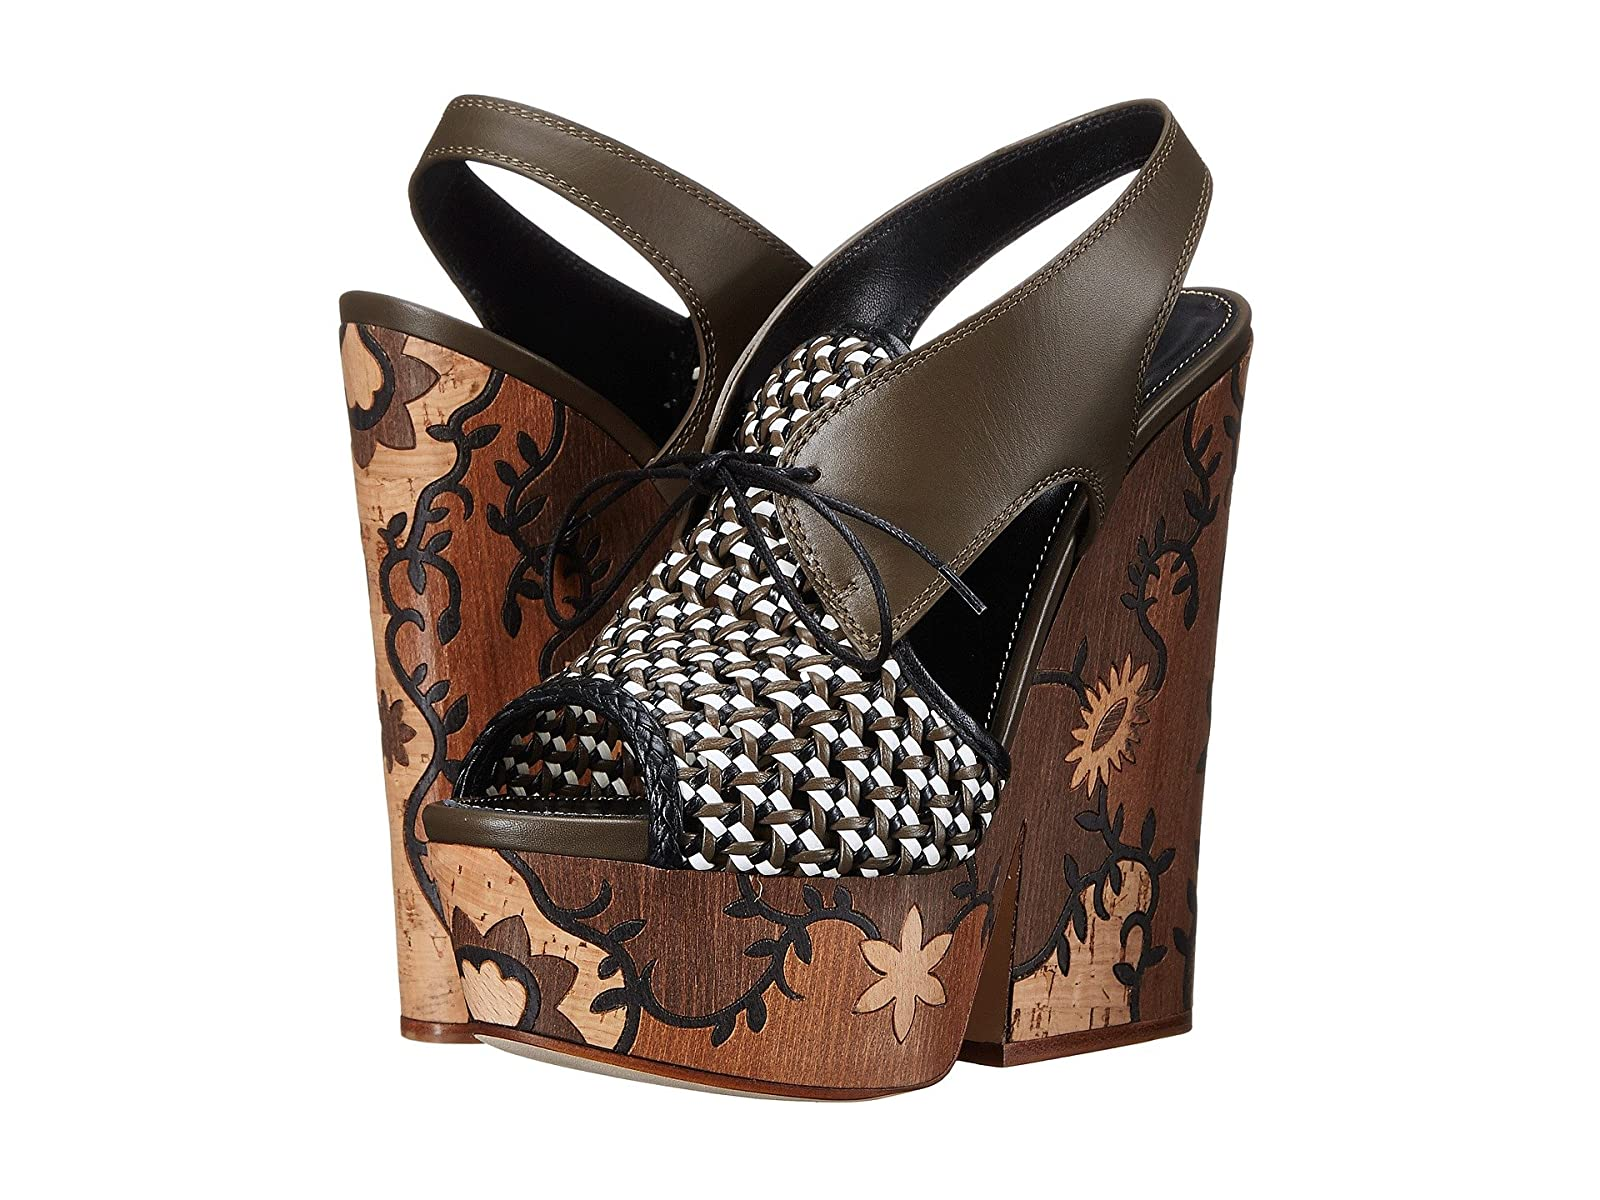 Sergio Rossi AtlantiquesCheap and distinctive eye-catching shoes